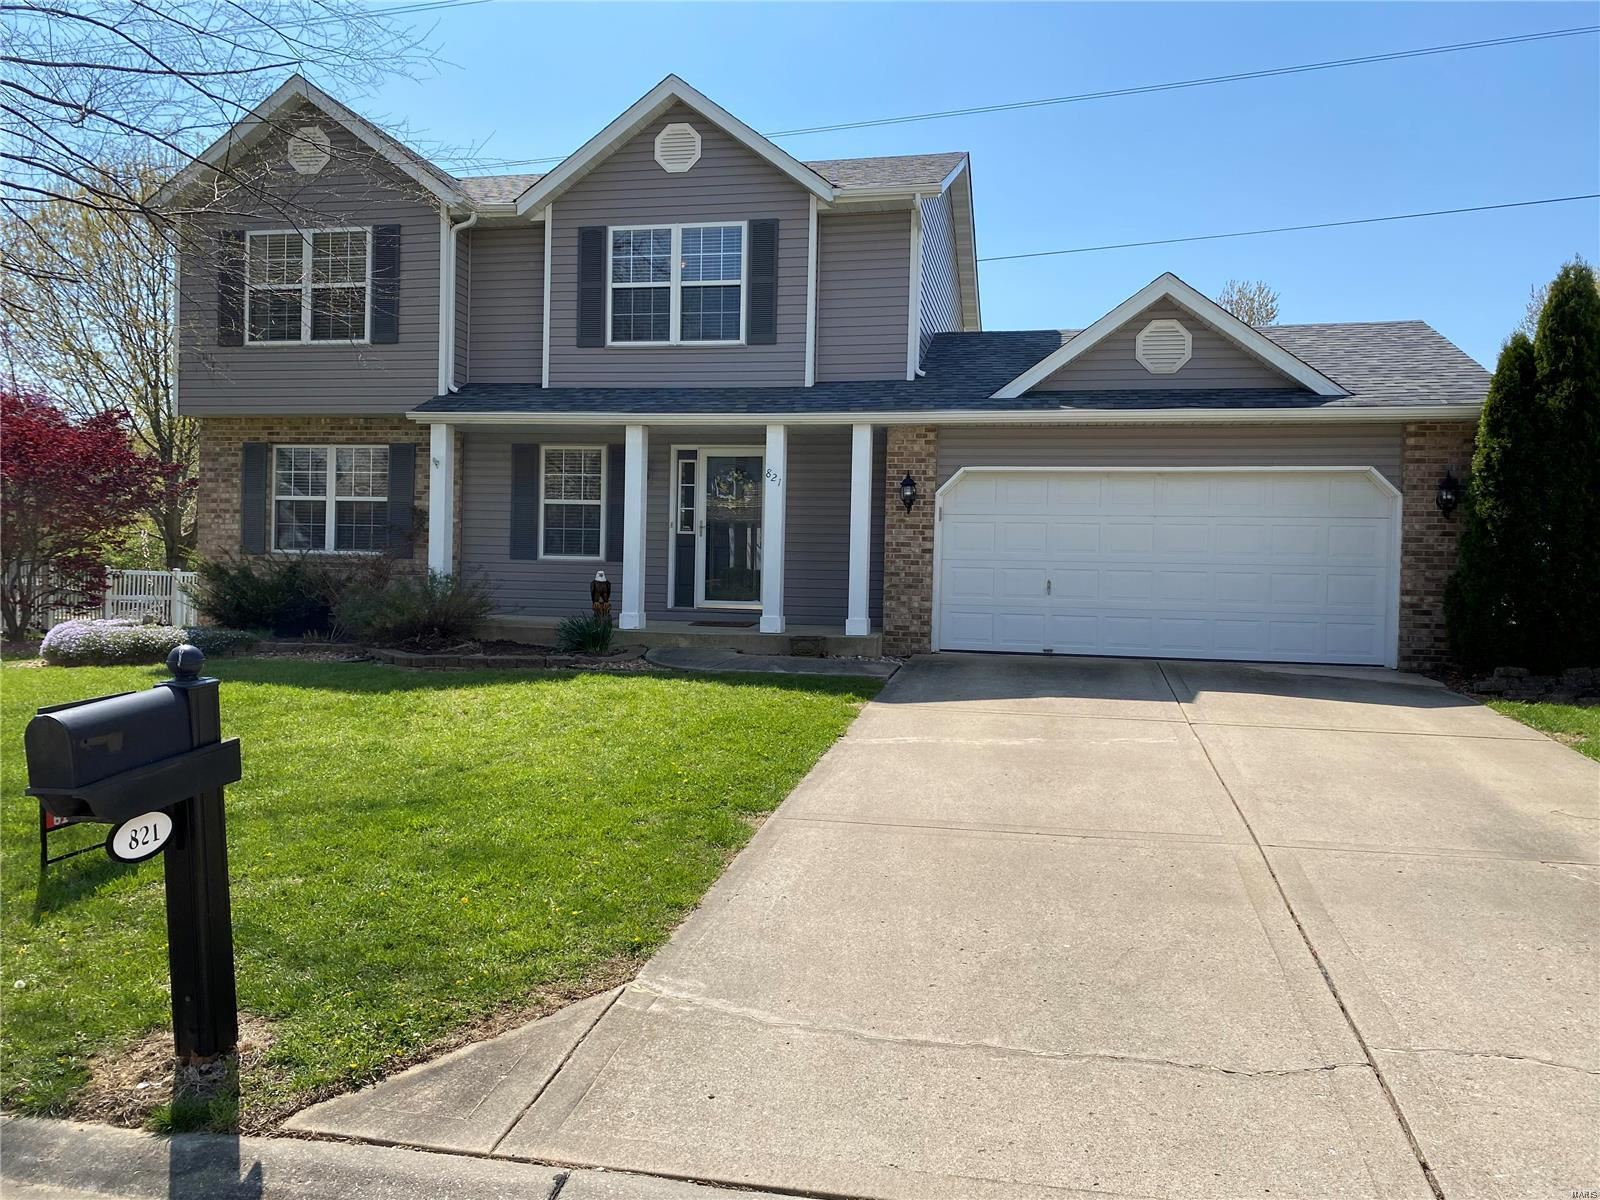 821 Cedar Valley Dr, Maryville, IL 62062 - MLS#: 20007670